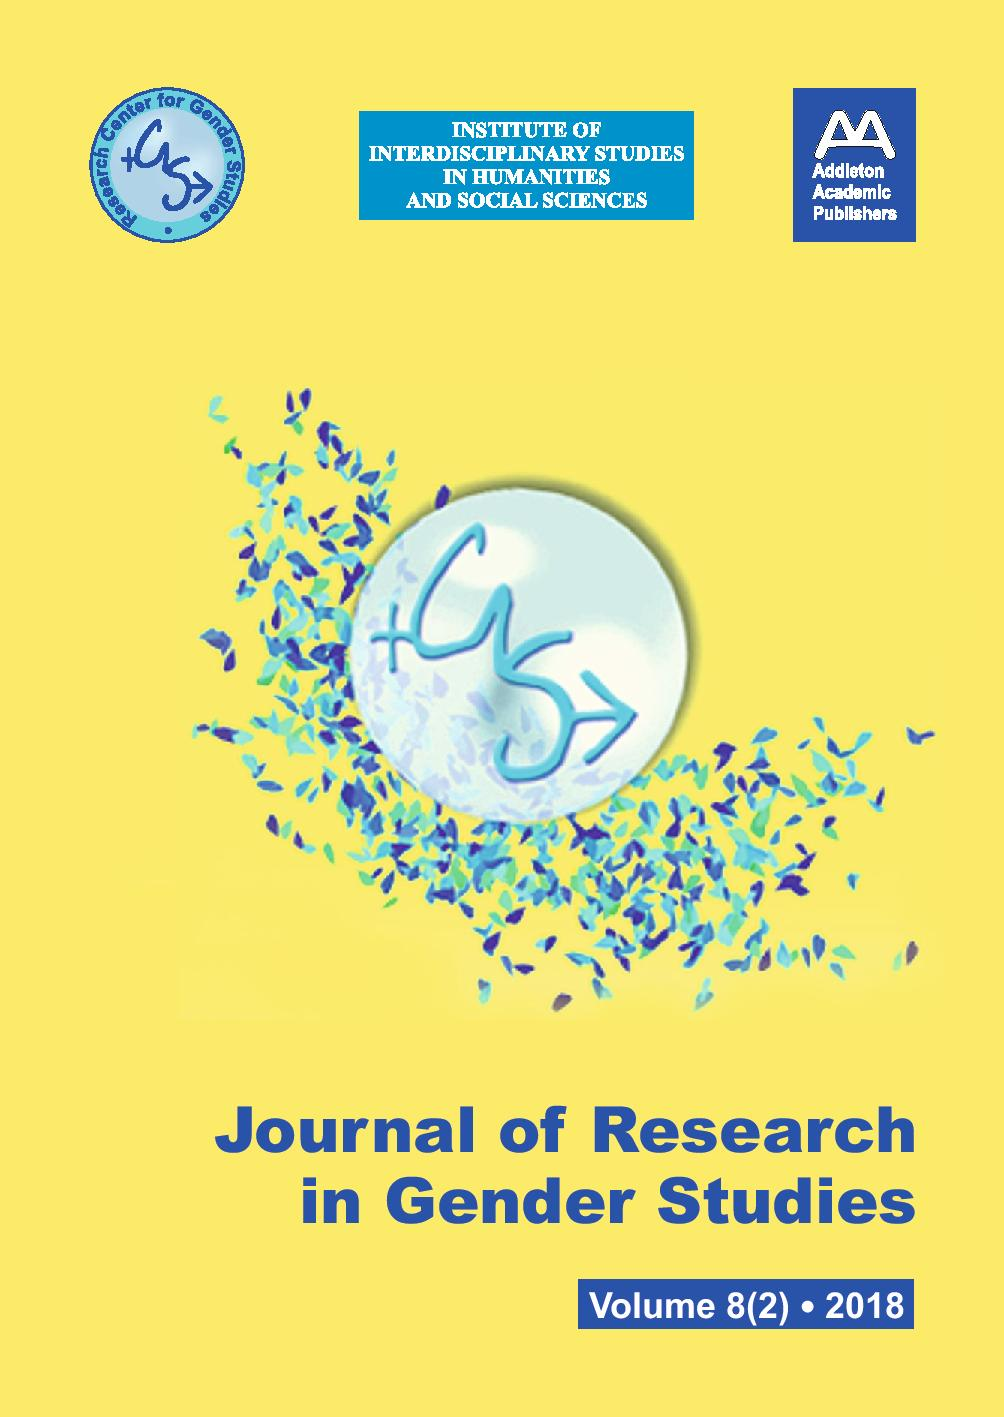 GENDER STUDIES IN COMMUNICATION RESEARCH: A LONGITUDINAL ANALYSIS OF SCIENTIFIC PAPERS PUBLISHED IN SPANISH JOURNALS INDEXED IN THE JOURNAL CITATION REPORTS (JCR) AND  THE SCIMAGO JOURNAL RANK (SJR) (1988–2017) Cover Image